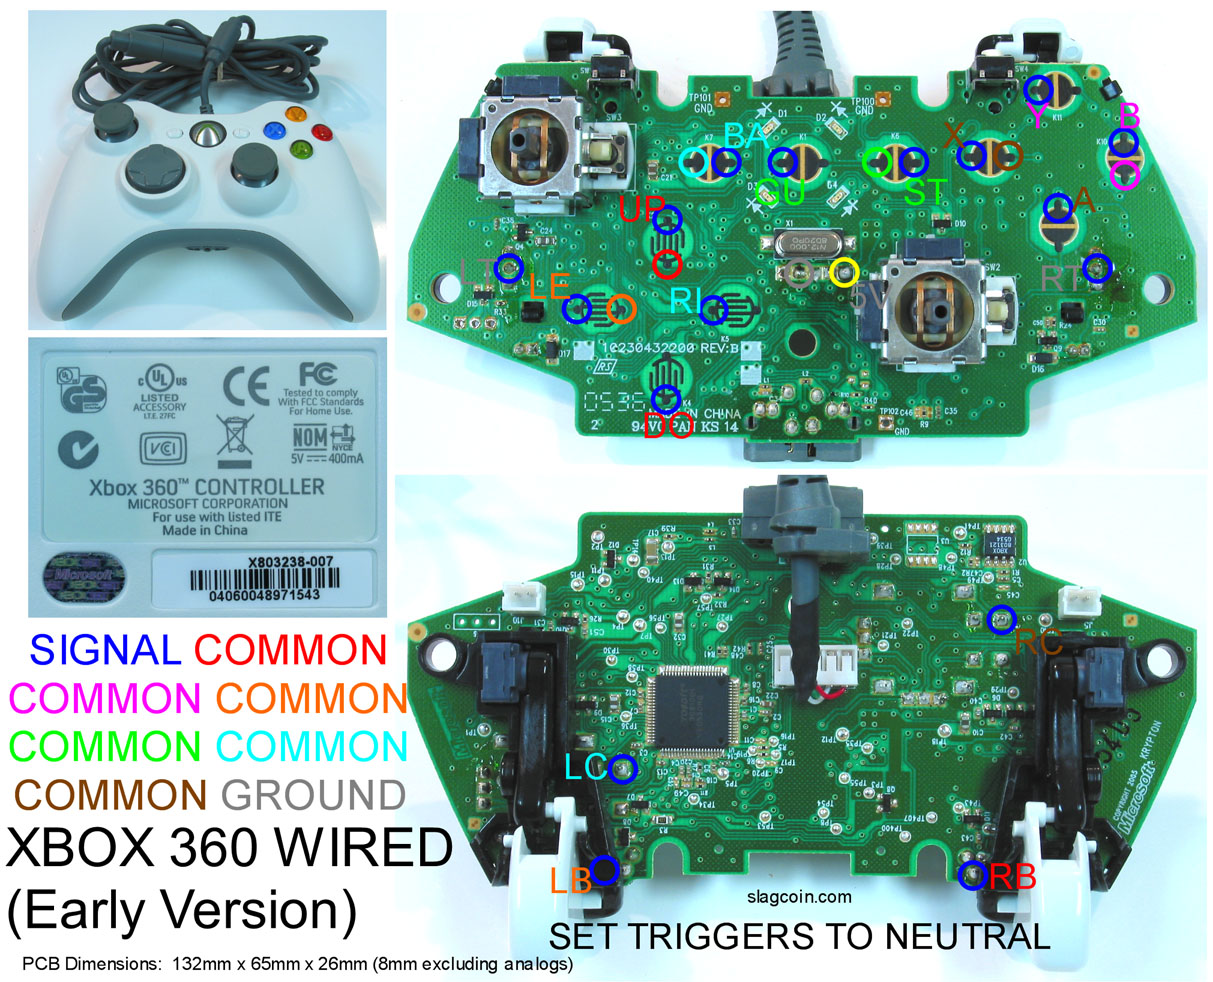 Xbox 360 Controller Schematic Wiring Diagram - Wiring Diagram Name Usb Xbox Schematics Diagram on xbox insides diagram, xbox controller, xbox 360 slim schematics, xbox one connections diagram, matrix diagram, xbox one schematics, ps3 schematic diagram, xbox x-clamp fix, xbox one wiring diagrams, xbox external wiring diagram, ps3 controller diagram, xbox power supply diagram, xbox circuit board diagram, playstation 4 controller diagram, xbox console diagram, nintendo 3ds schematics diagram, playstation 3 diagram, xbox motherboard diagram, xbox bill gate japanese poster, xbox instruction manual pdf,